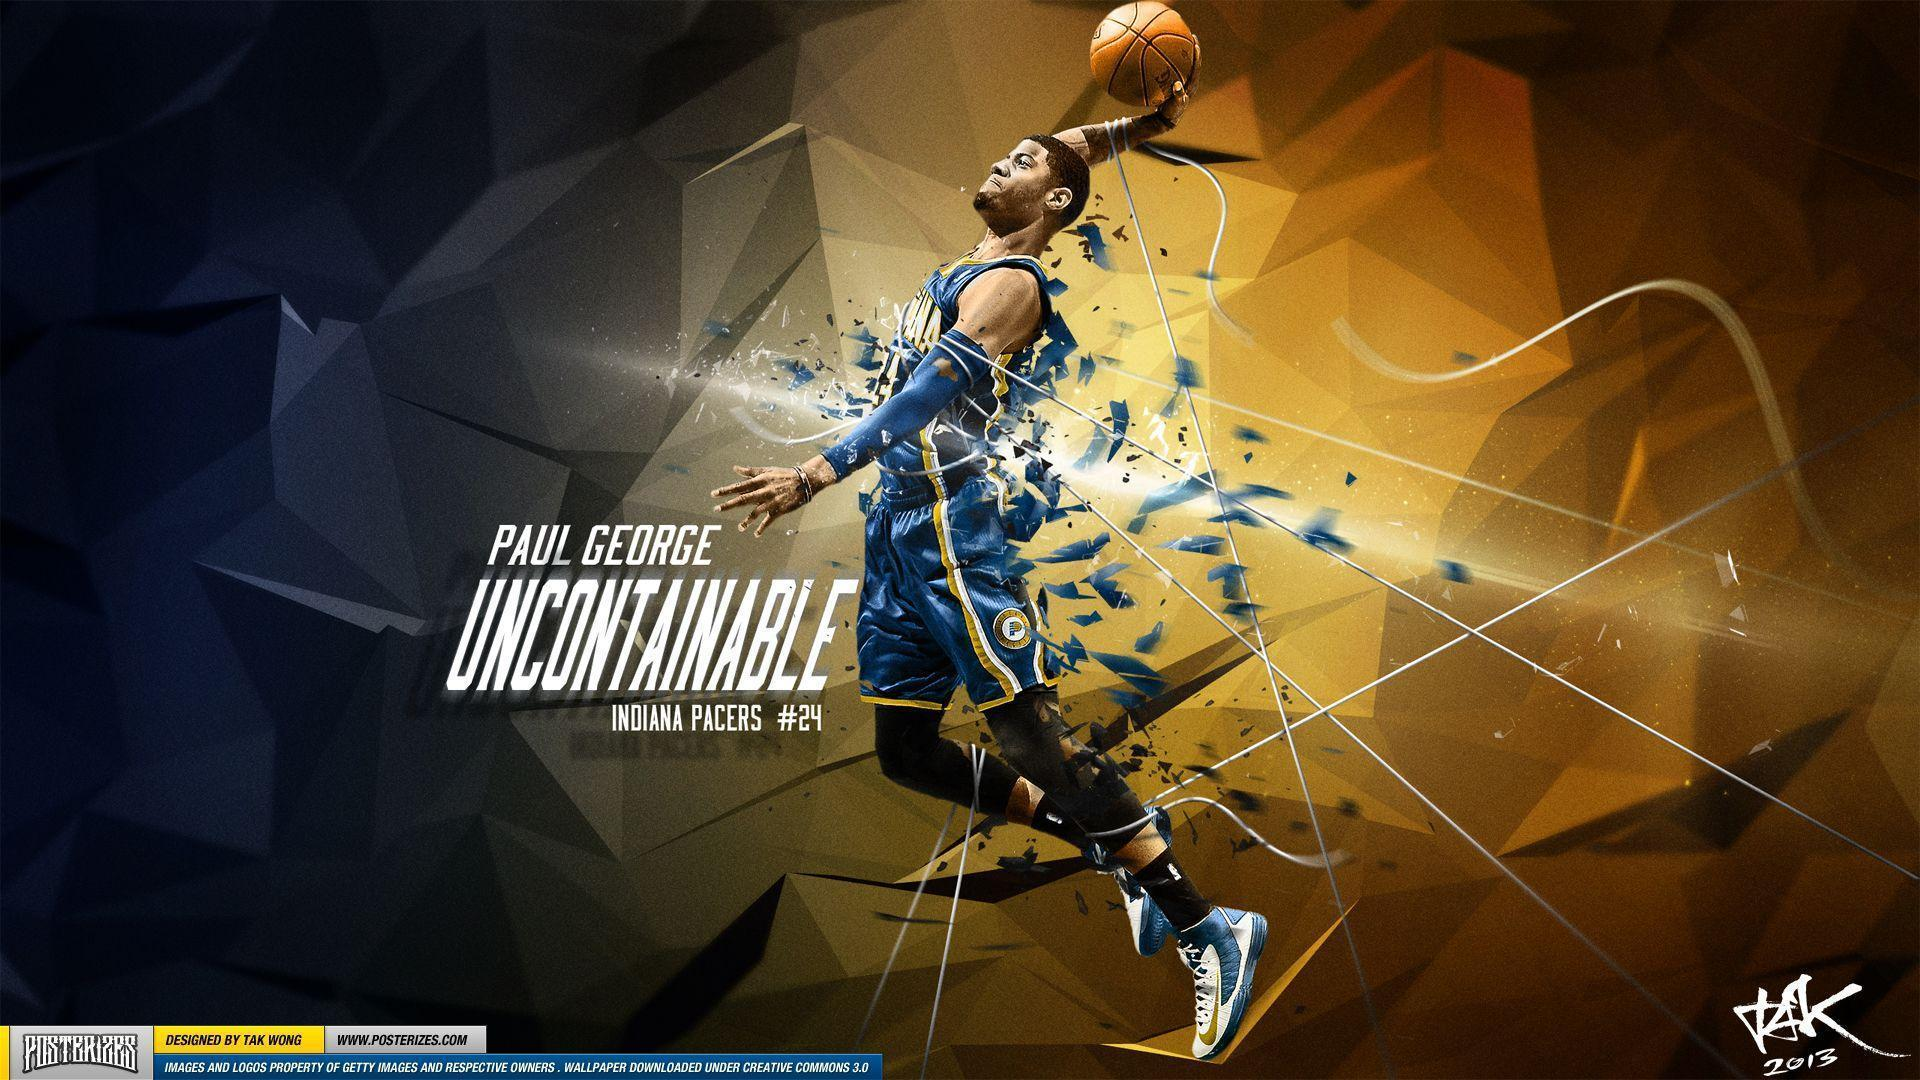 Paul George 'Uncontainable' Wallpaper | Posterizes.com - NBA ...